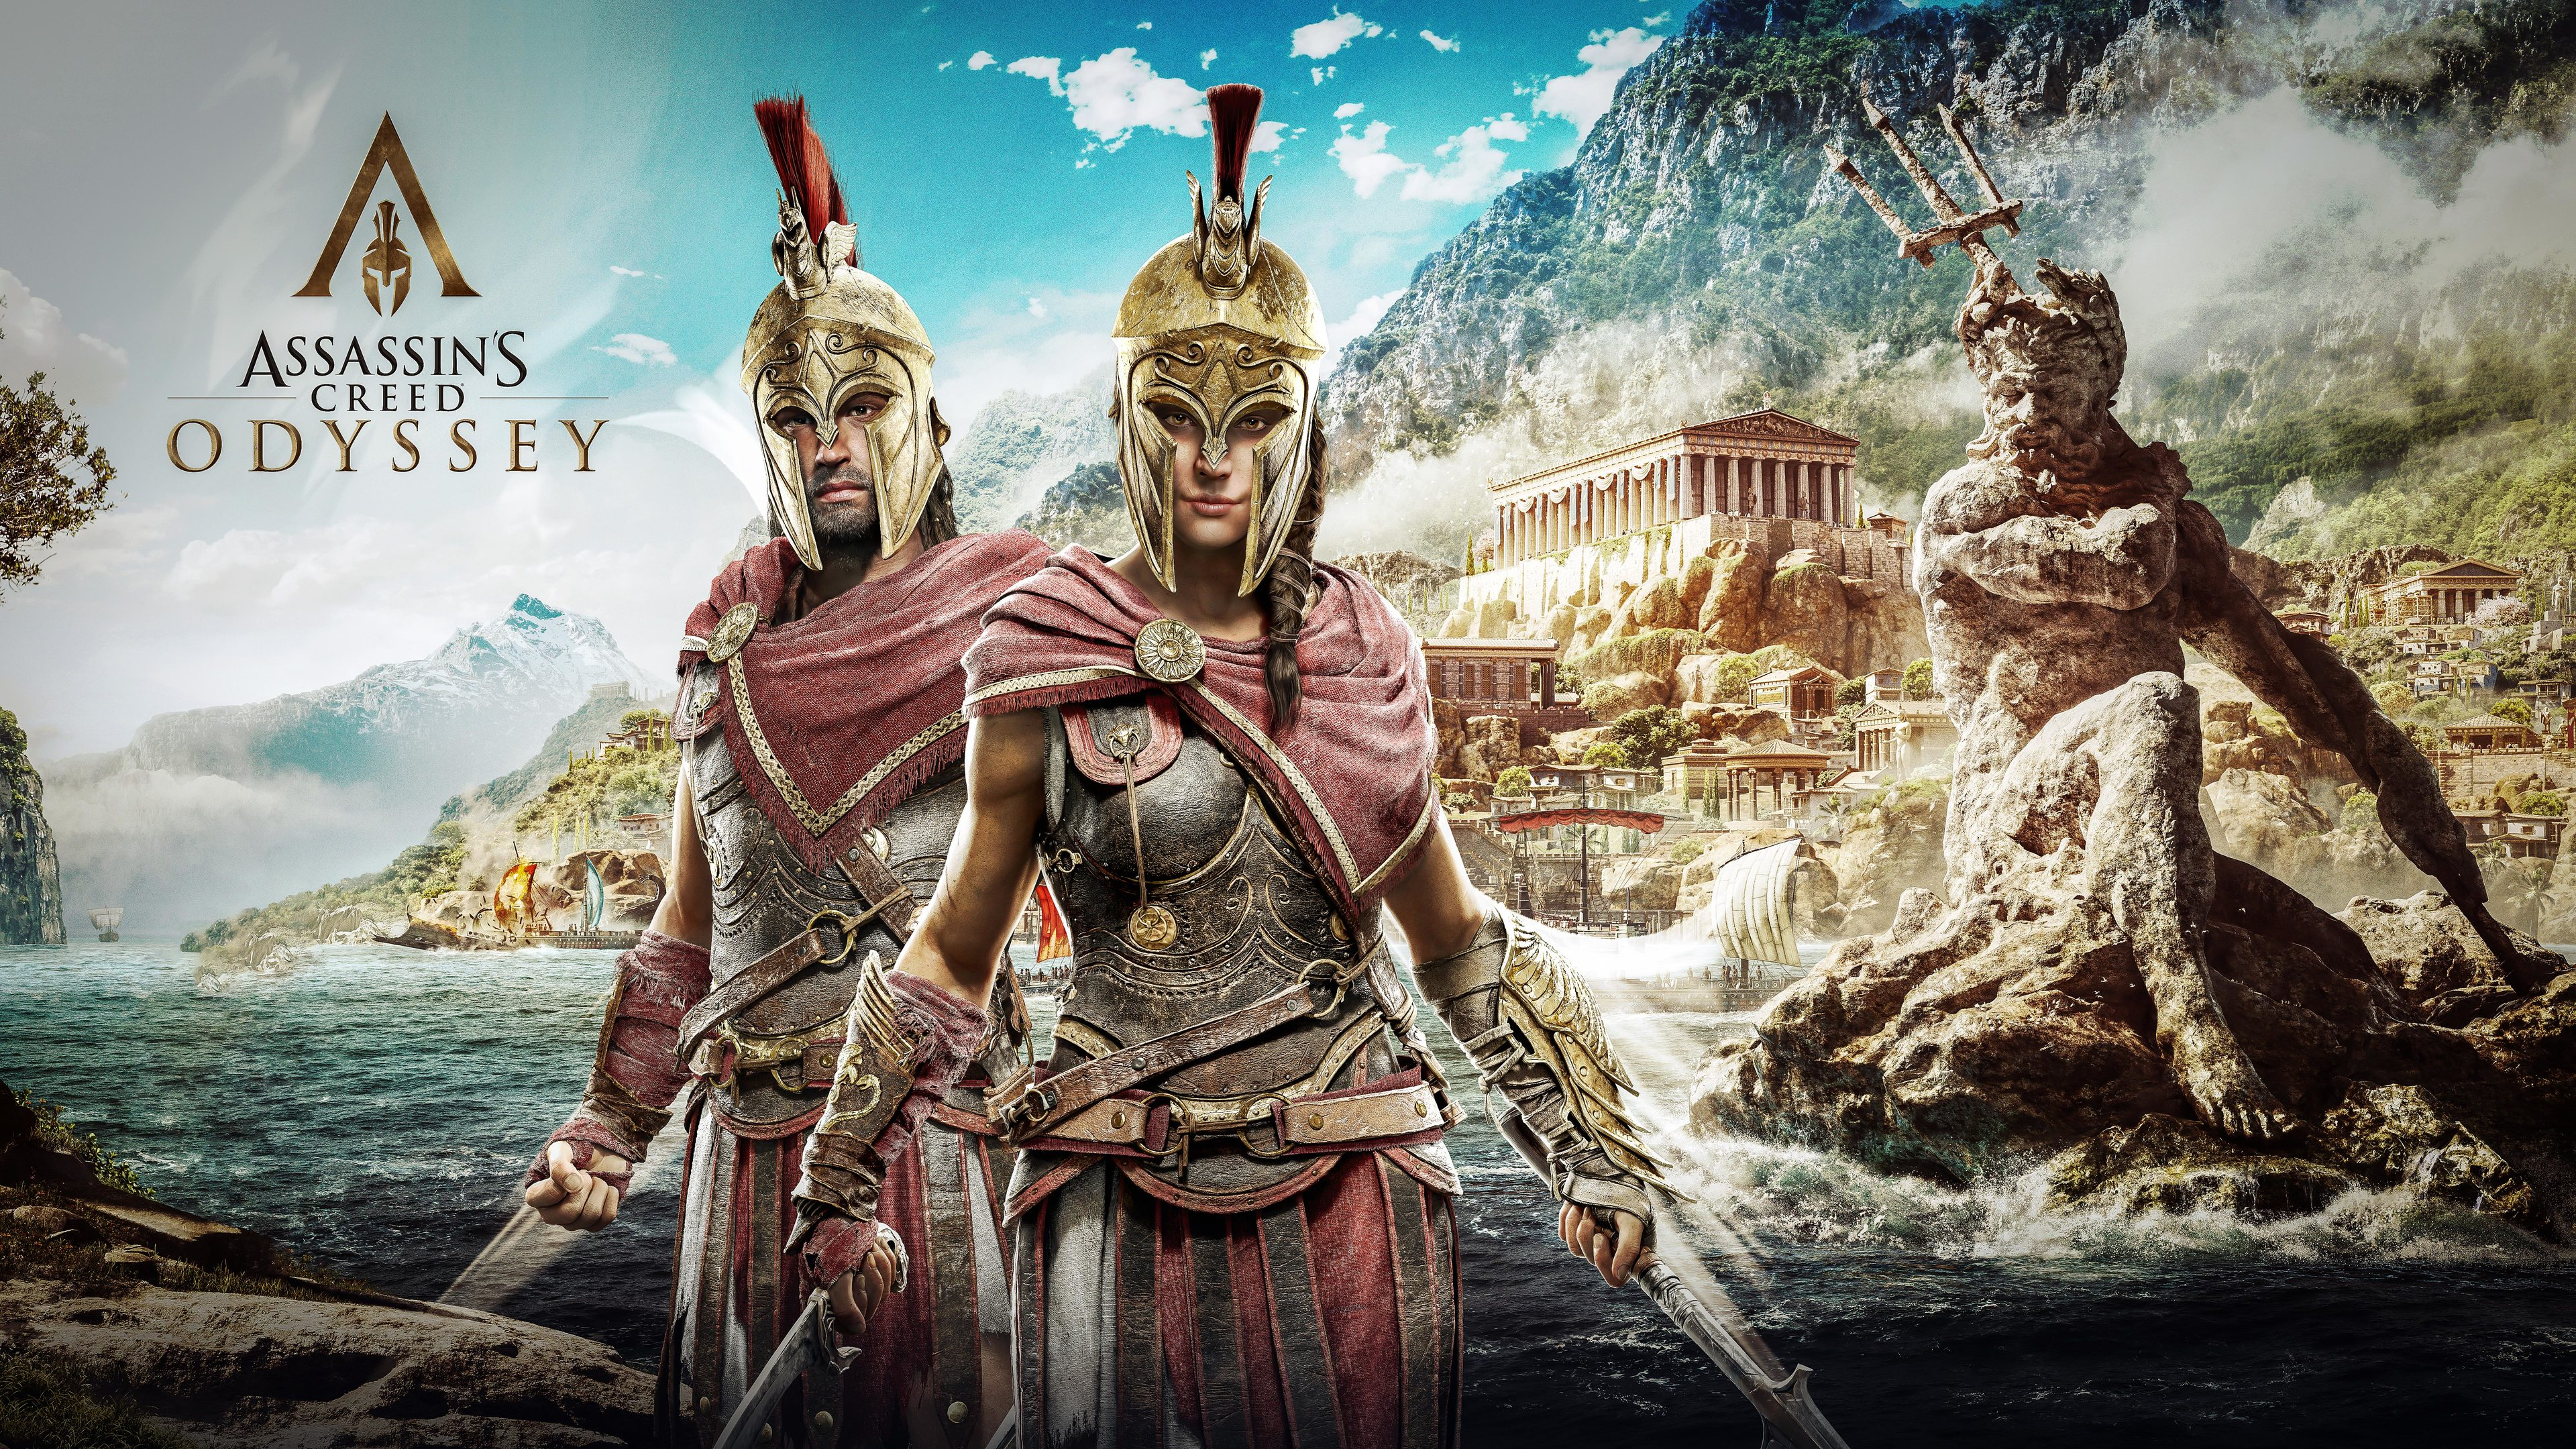 alexios and kassandra assassins creed odyssey 8k 1537691035 - Alexios And Kassandra Assassins Creed Odyssey 8k - hd-wallpapers, games wallpapers, assassins creed wallpapers, assassins creed odyssey wallpapers, 8k wallpapers, 5k wallpapers, 4k-wallpapers, 2018 games wallpapers